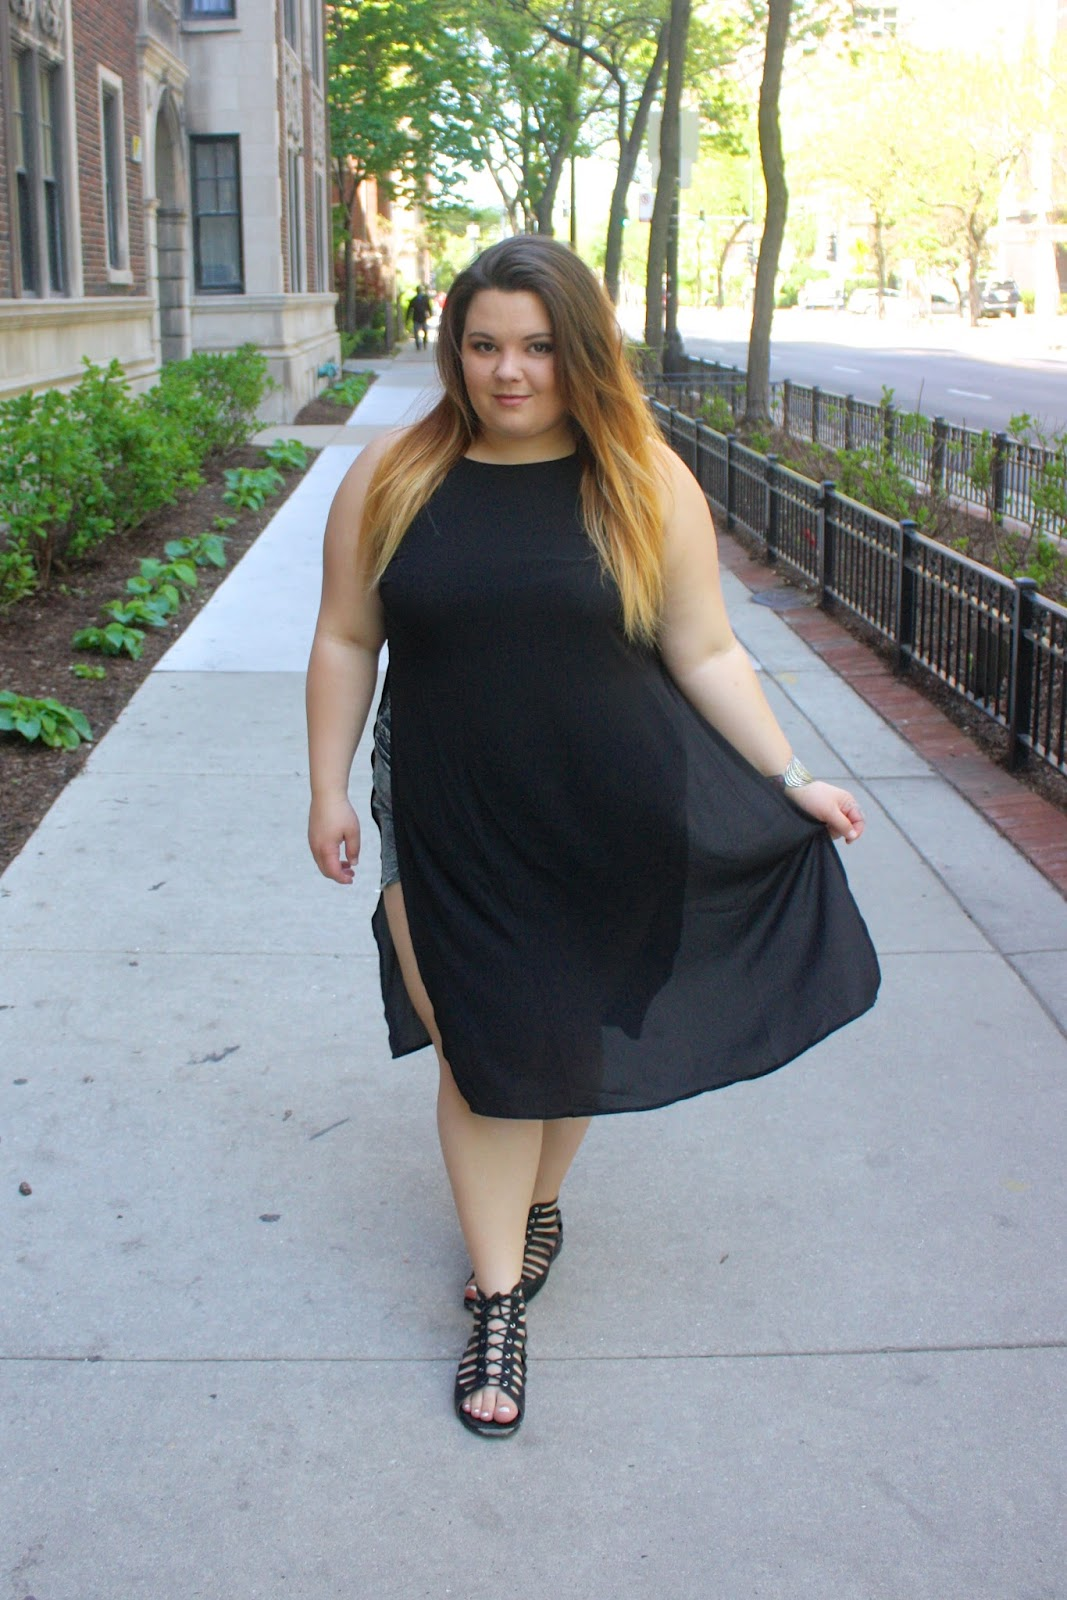 Forever 21 plus, plus size fashion, ps fashion, natalie craig, natalie in the city, chicago, chicago blogger network, dress with slits, dress slits, ombre hairstyle, tribal print shorts, acid wash shorts, bbw, curvy, tribal accessories, summer style 2015